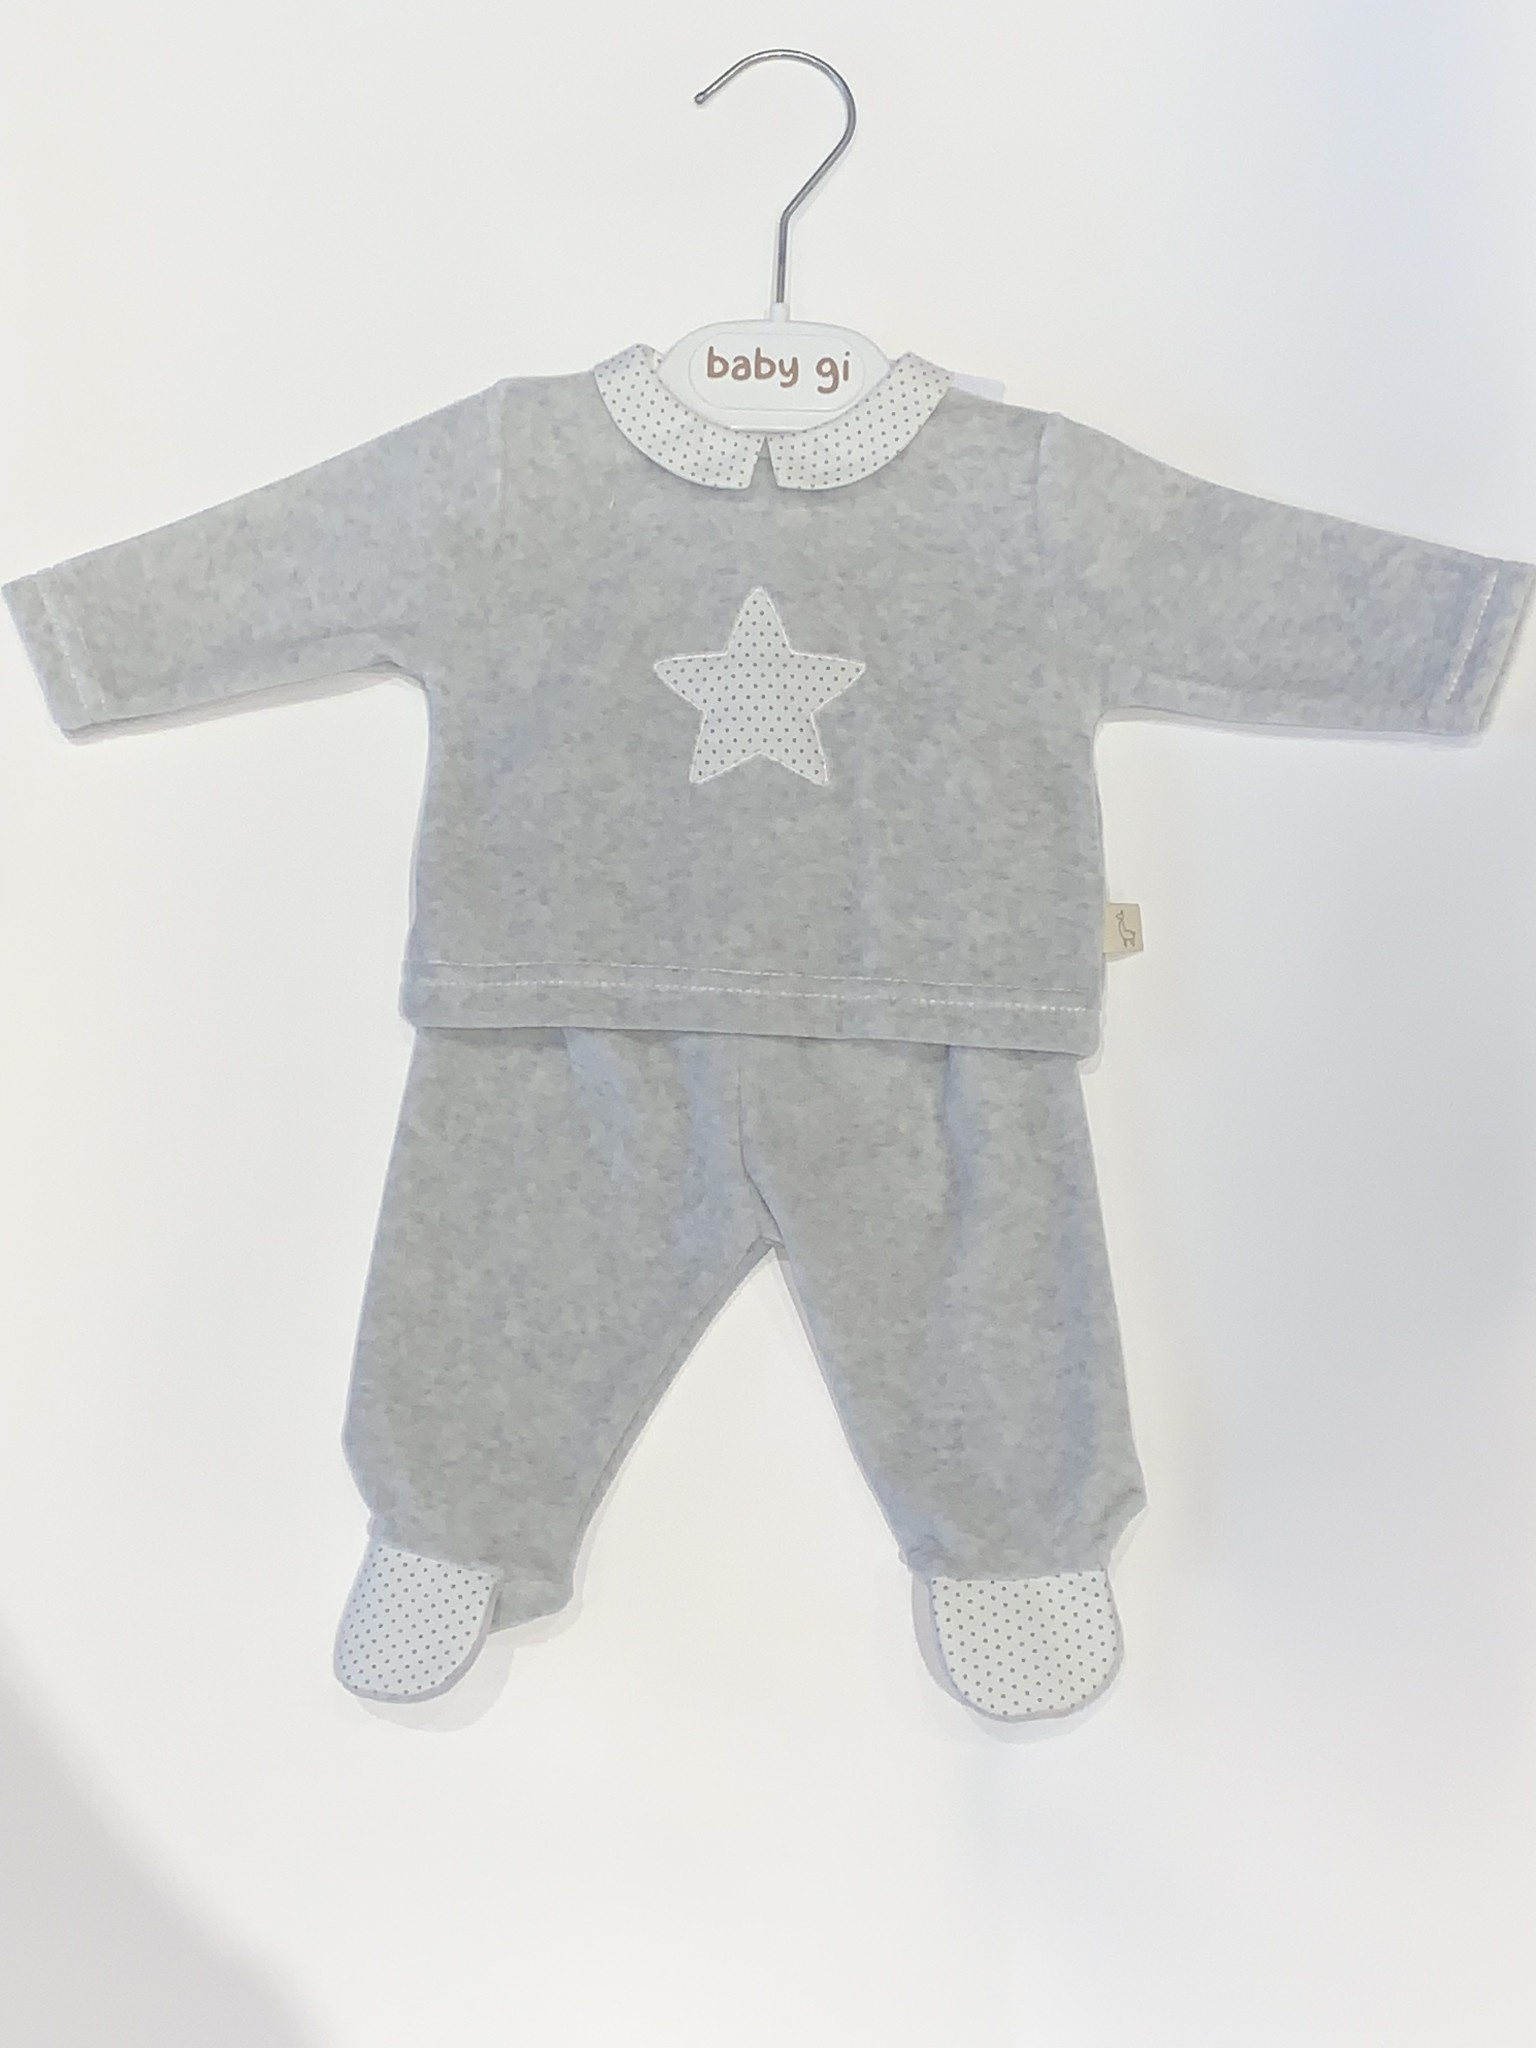 Baby Gi Baby gi grey 2 piece velour star set